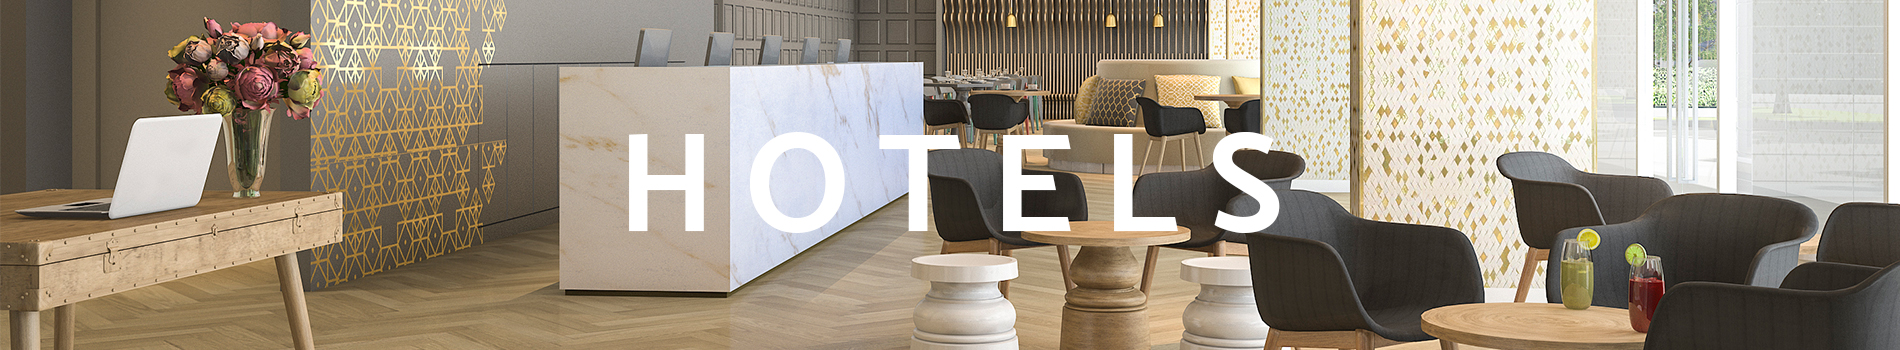 Hotels section banner, picture of a hotel lobby